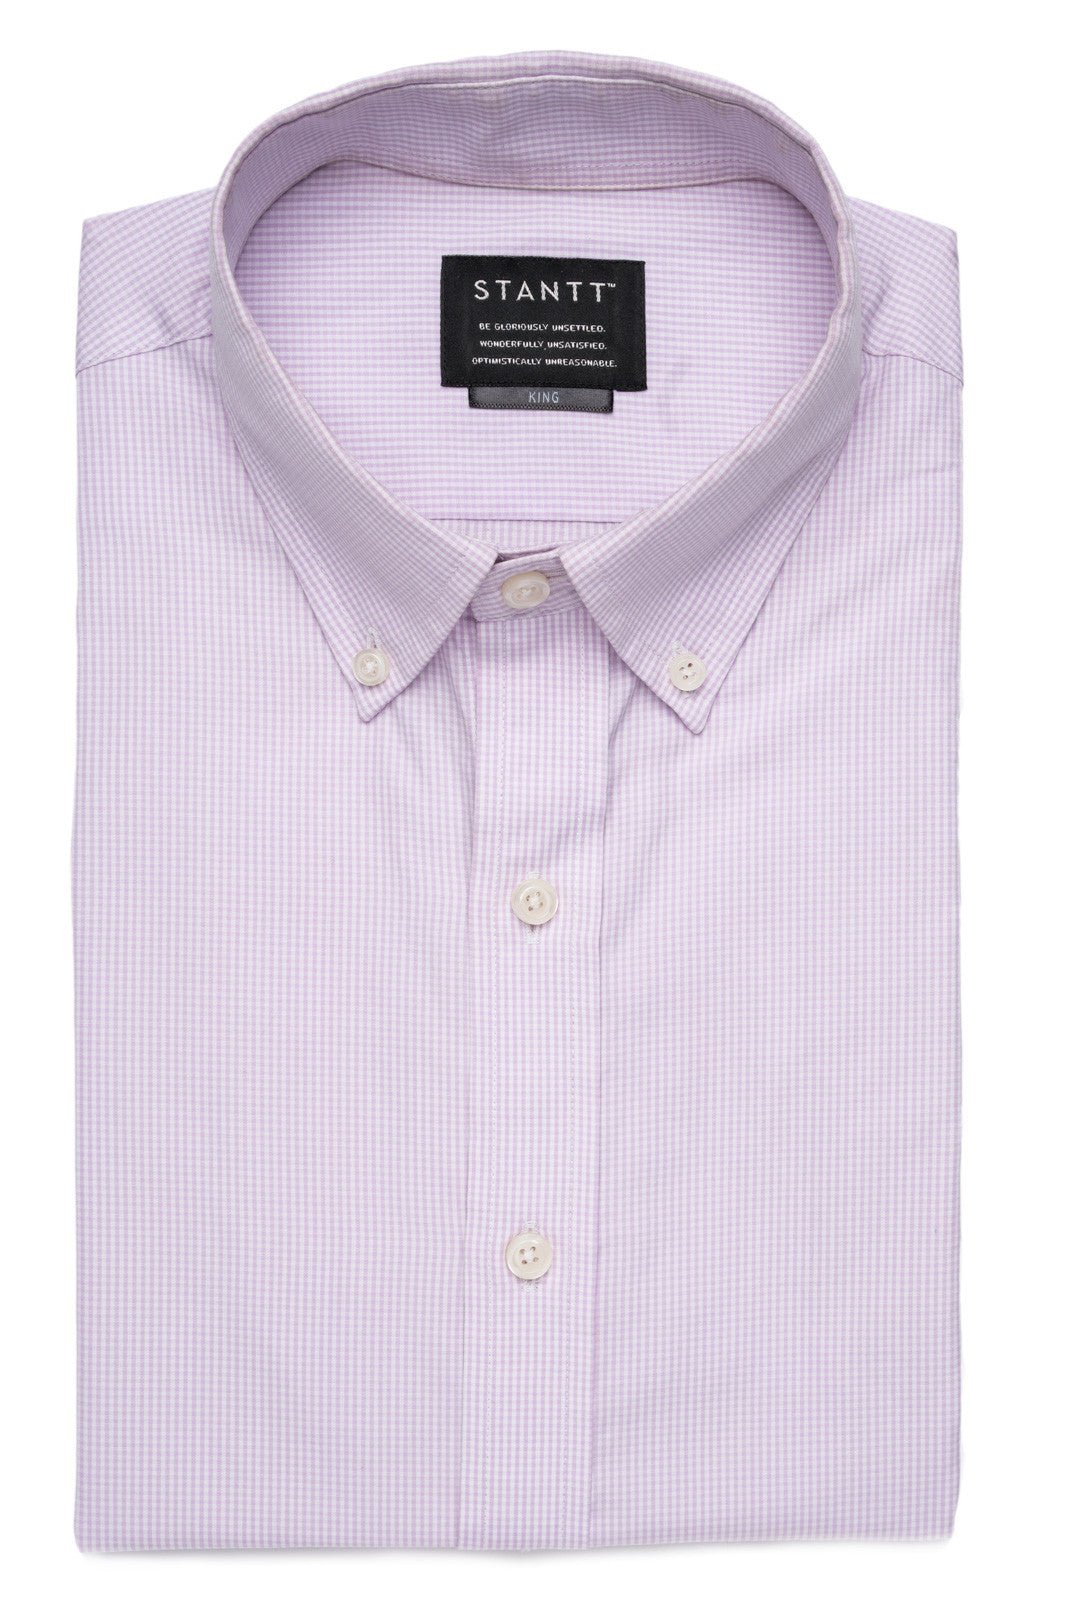 Lavender Micro Check: Modified Spread Collar, French Cuff